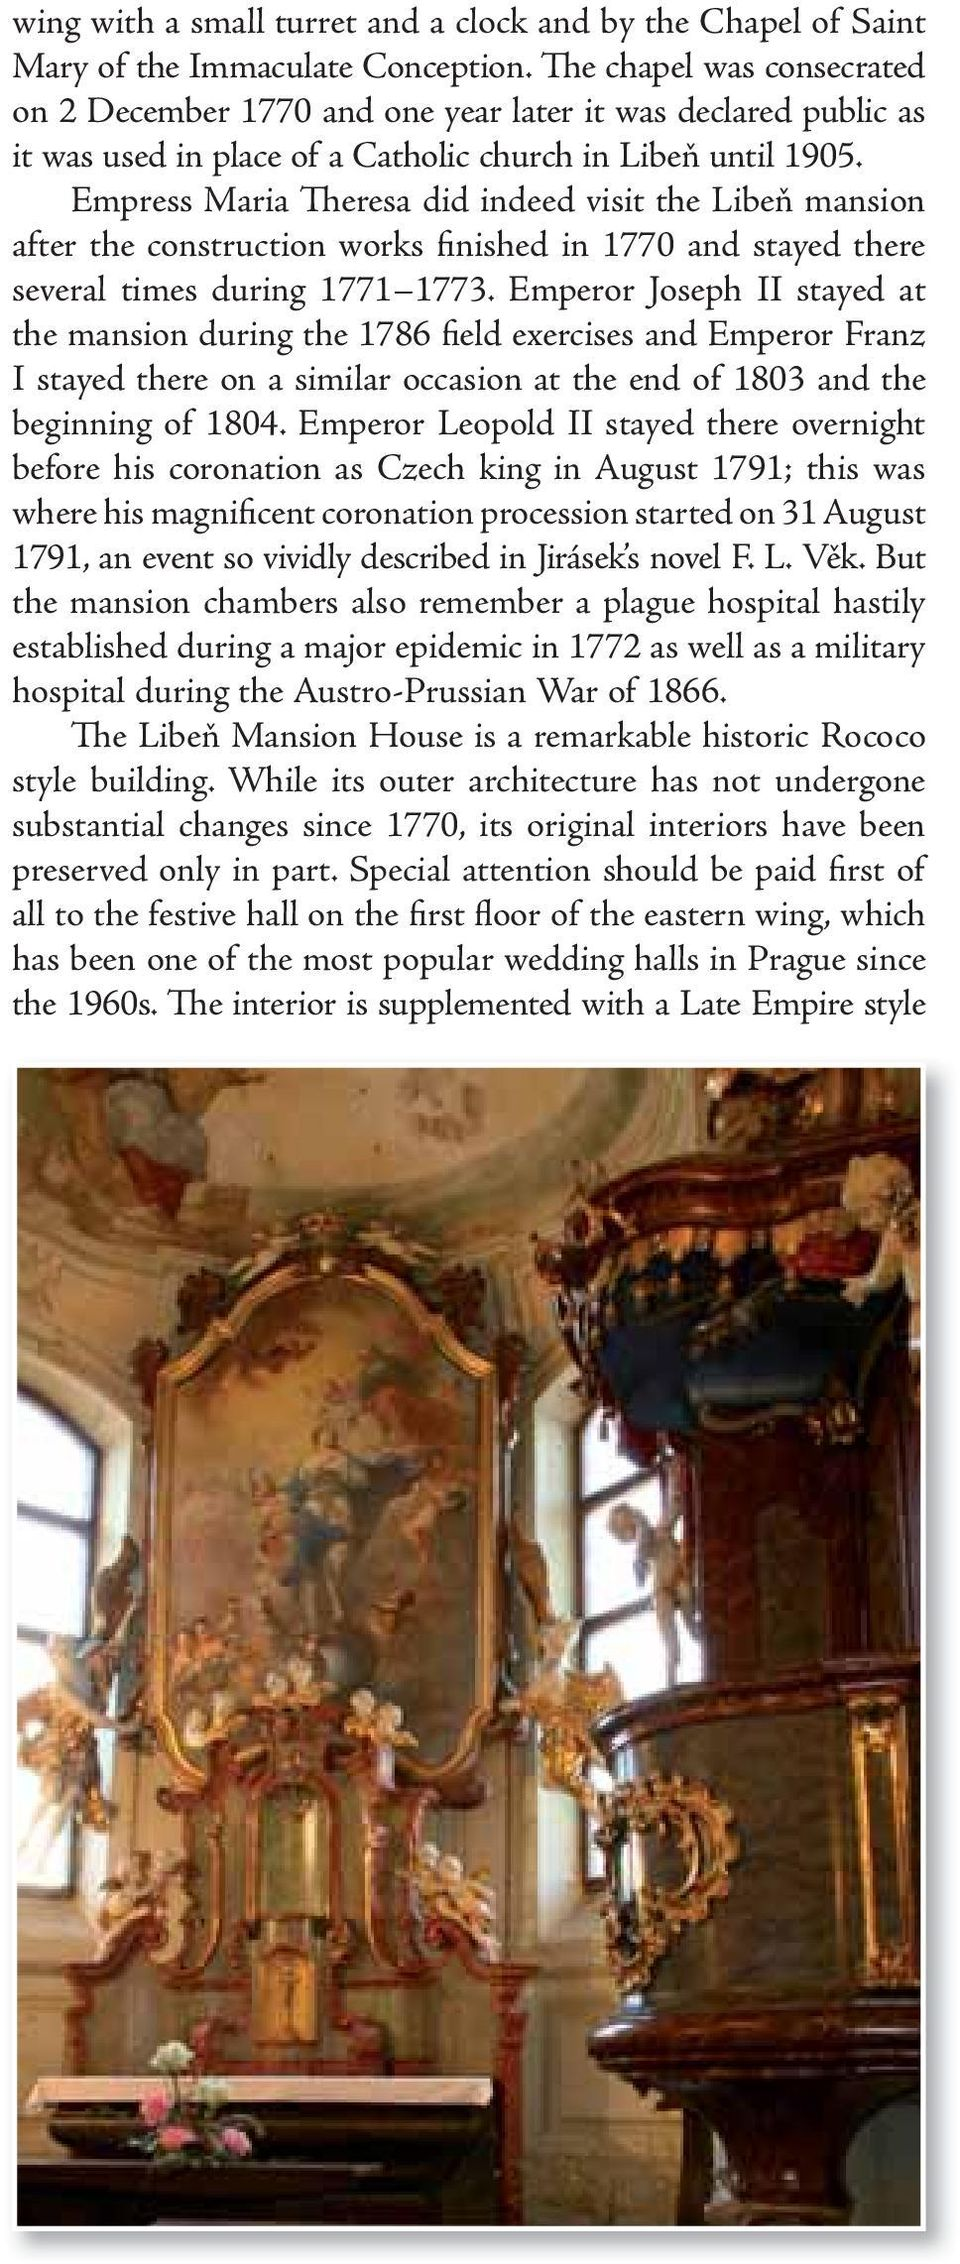 Empress Maria Theresa did indeed visit the Libeň mansion after the construction works finished in 1770 and stayed there several times during 1771 1773.